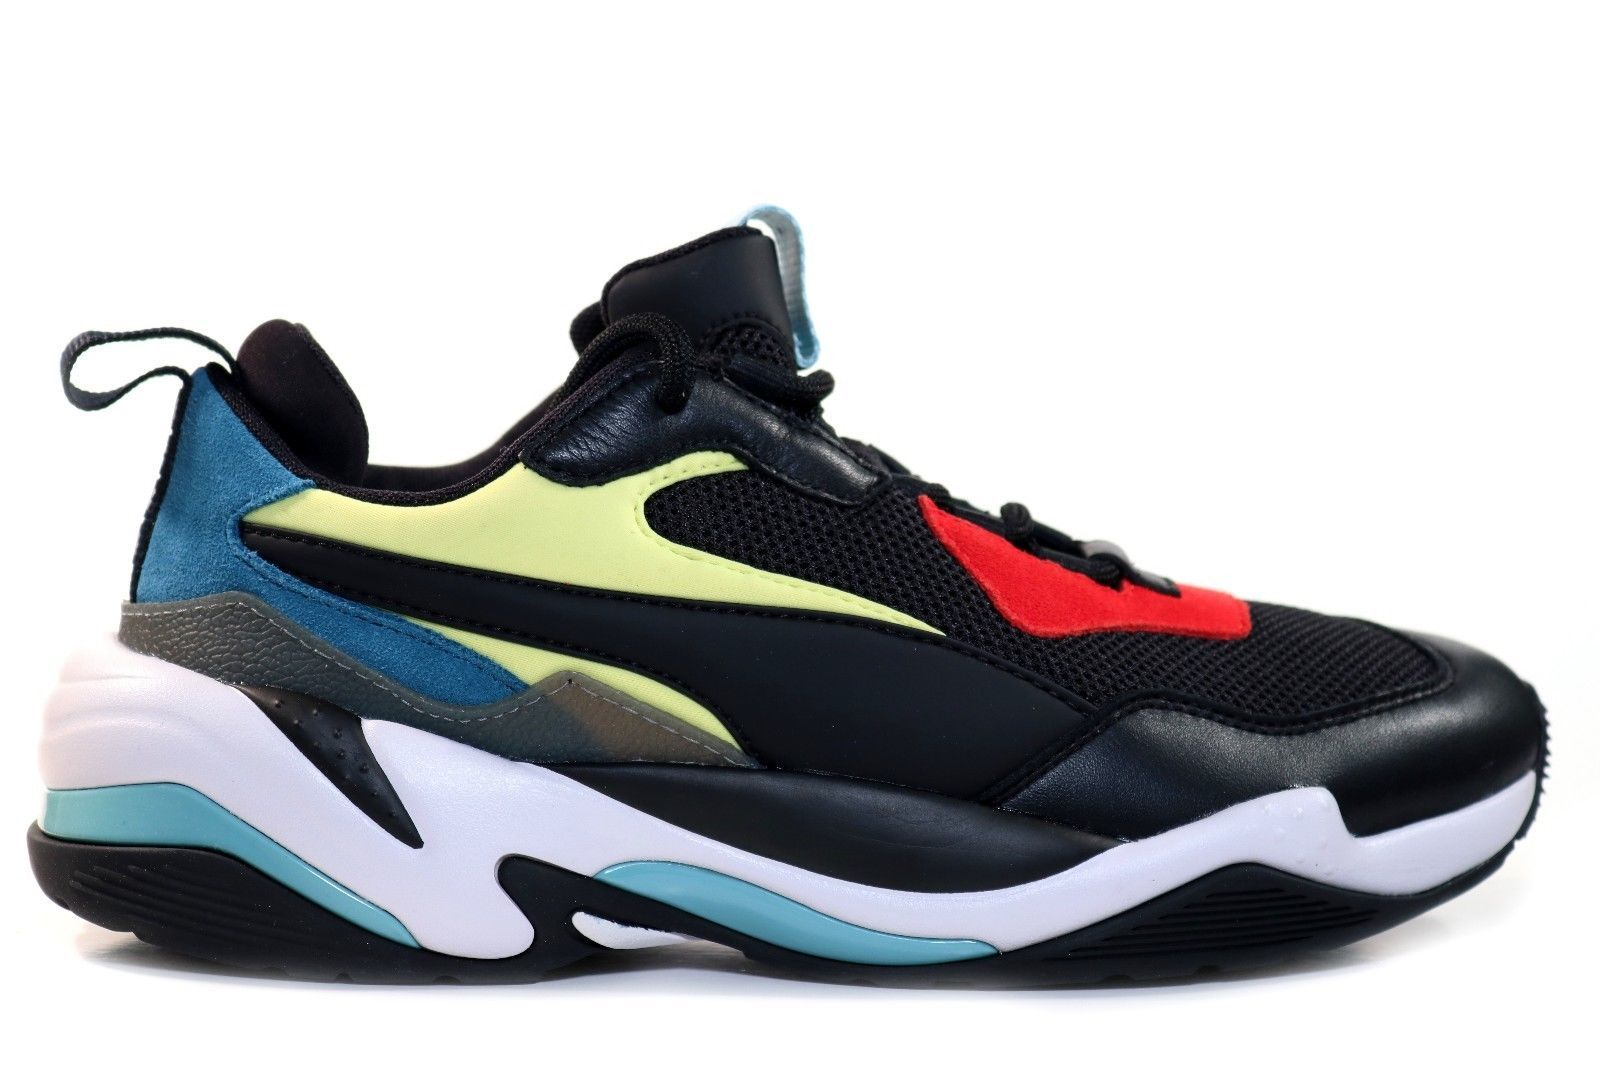 2b012e18 Check out the Puma Thunder Spectra Black available on StockX. Basketball  Open Gym Near Me. Puma Thunder Spectra Black Guaranteed Trendy Dad Triple S  Tekno ...